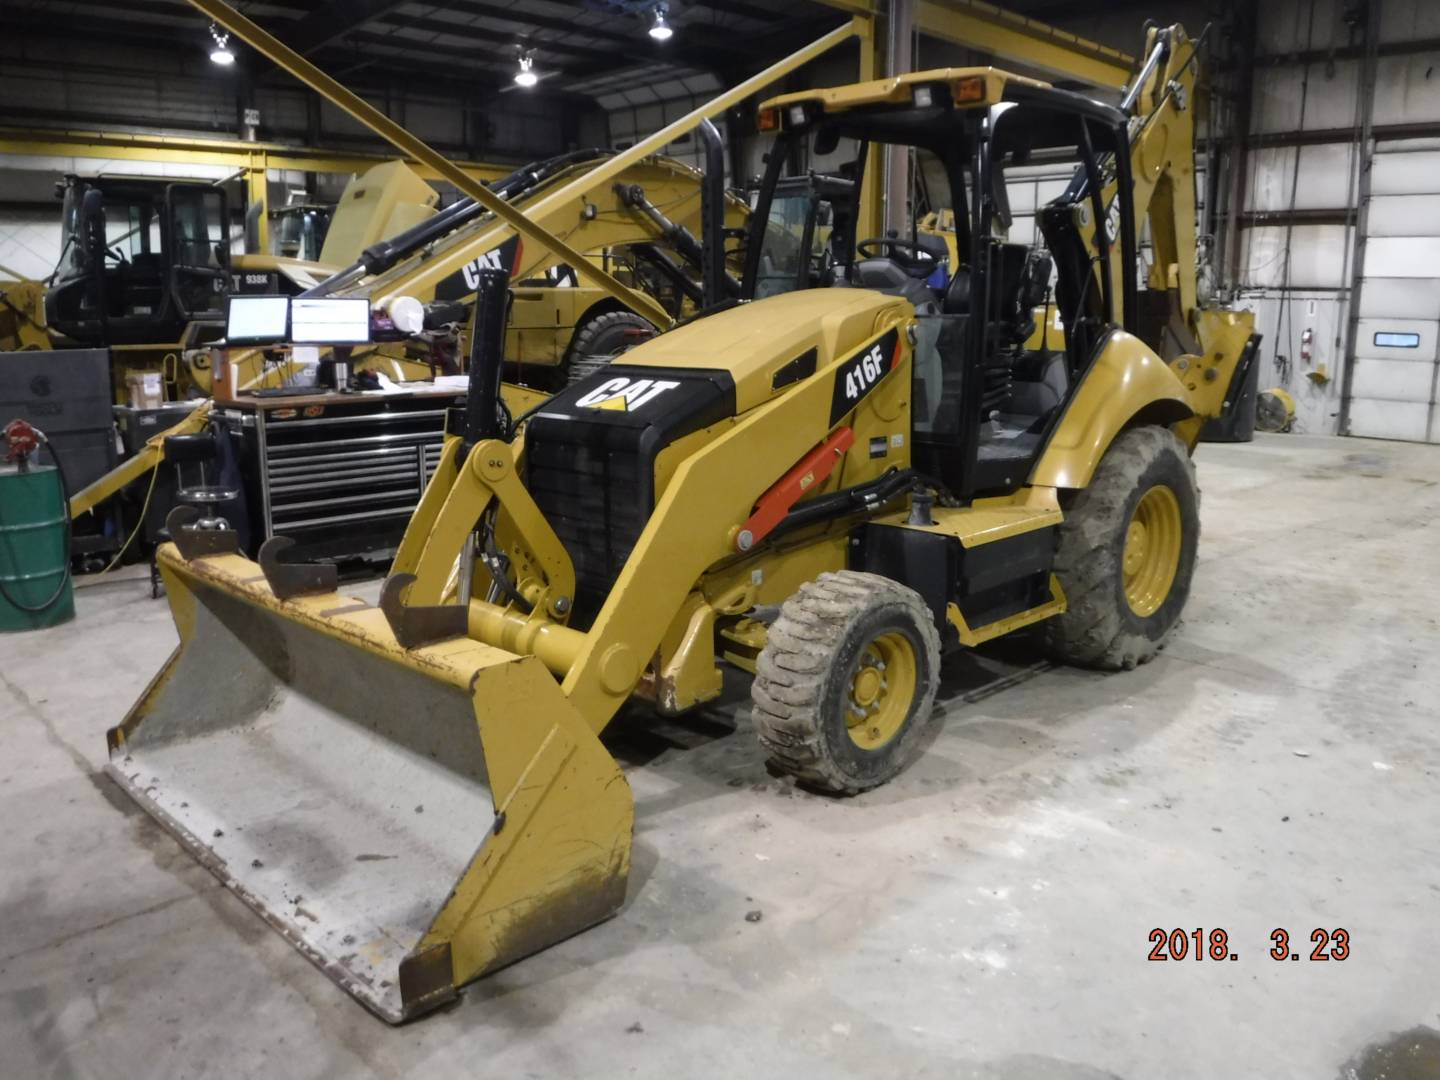 Whayne Walker Cat | New 416F2 Backhoe Loader for Sale - Whayne